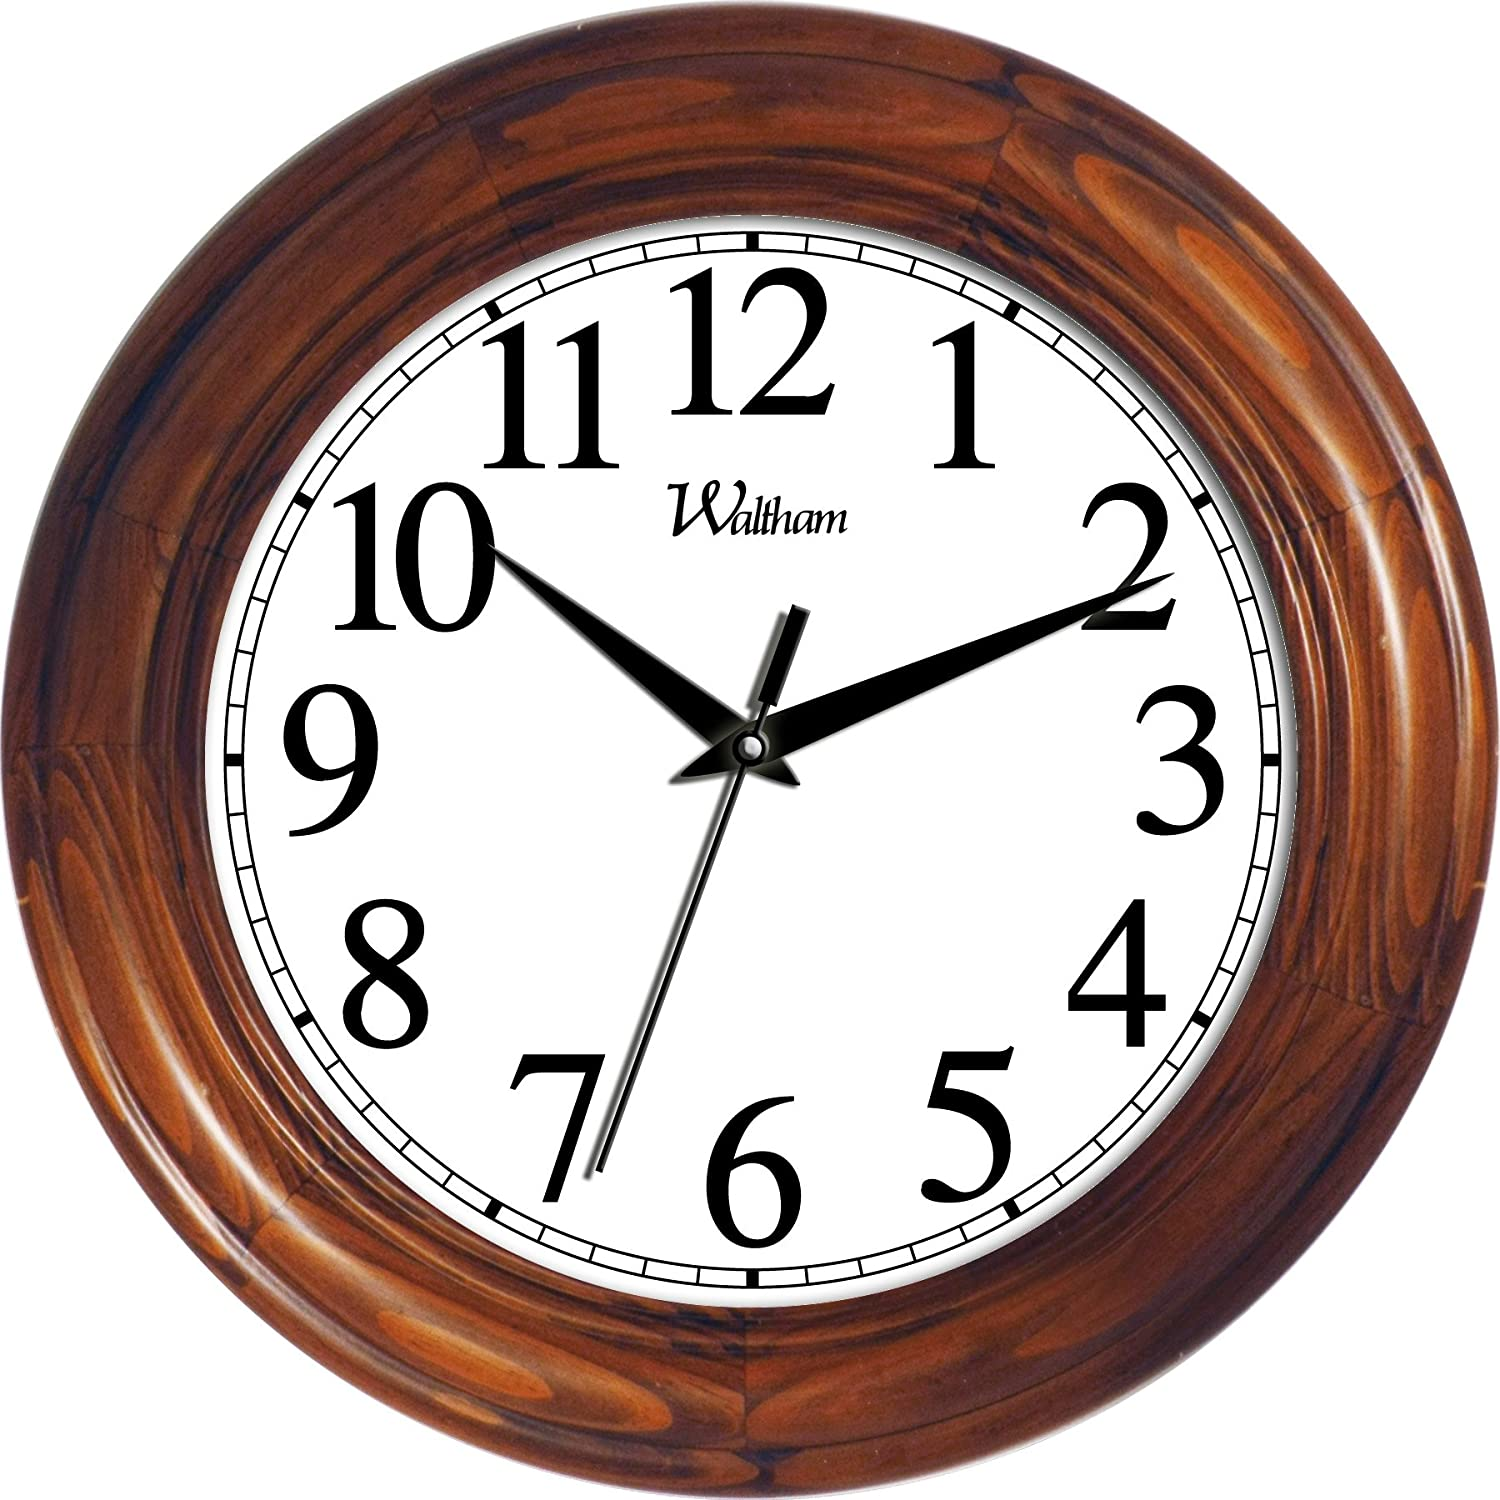 ashton sutton round quartz analog wall clock, 12